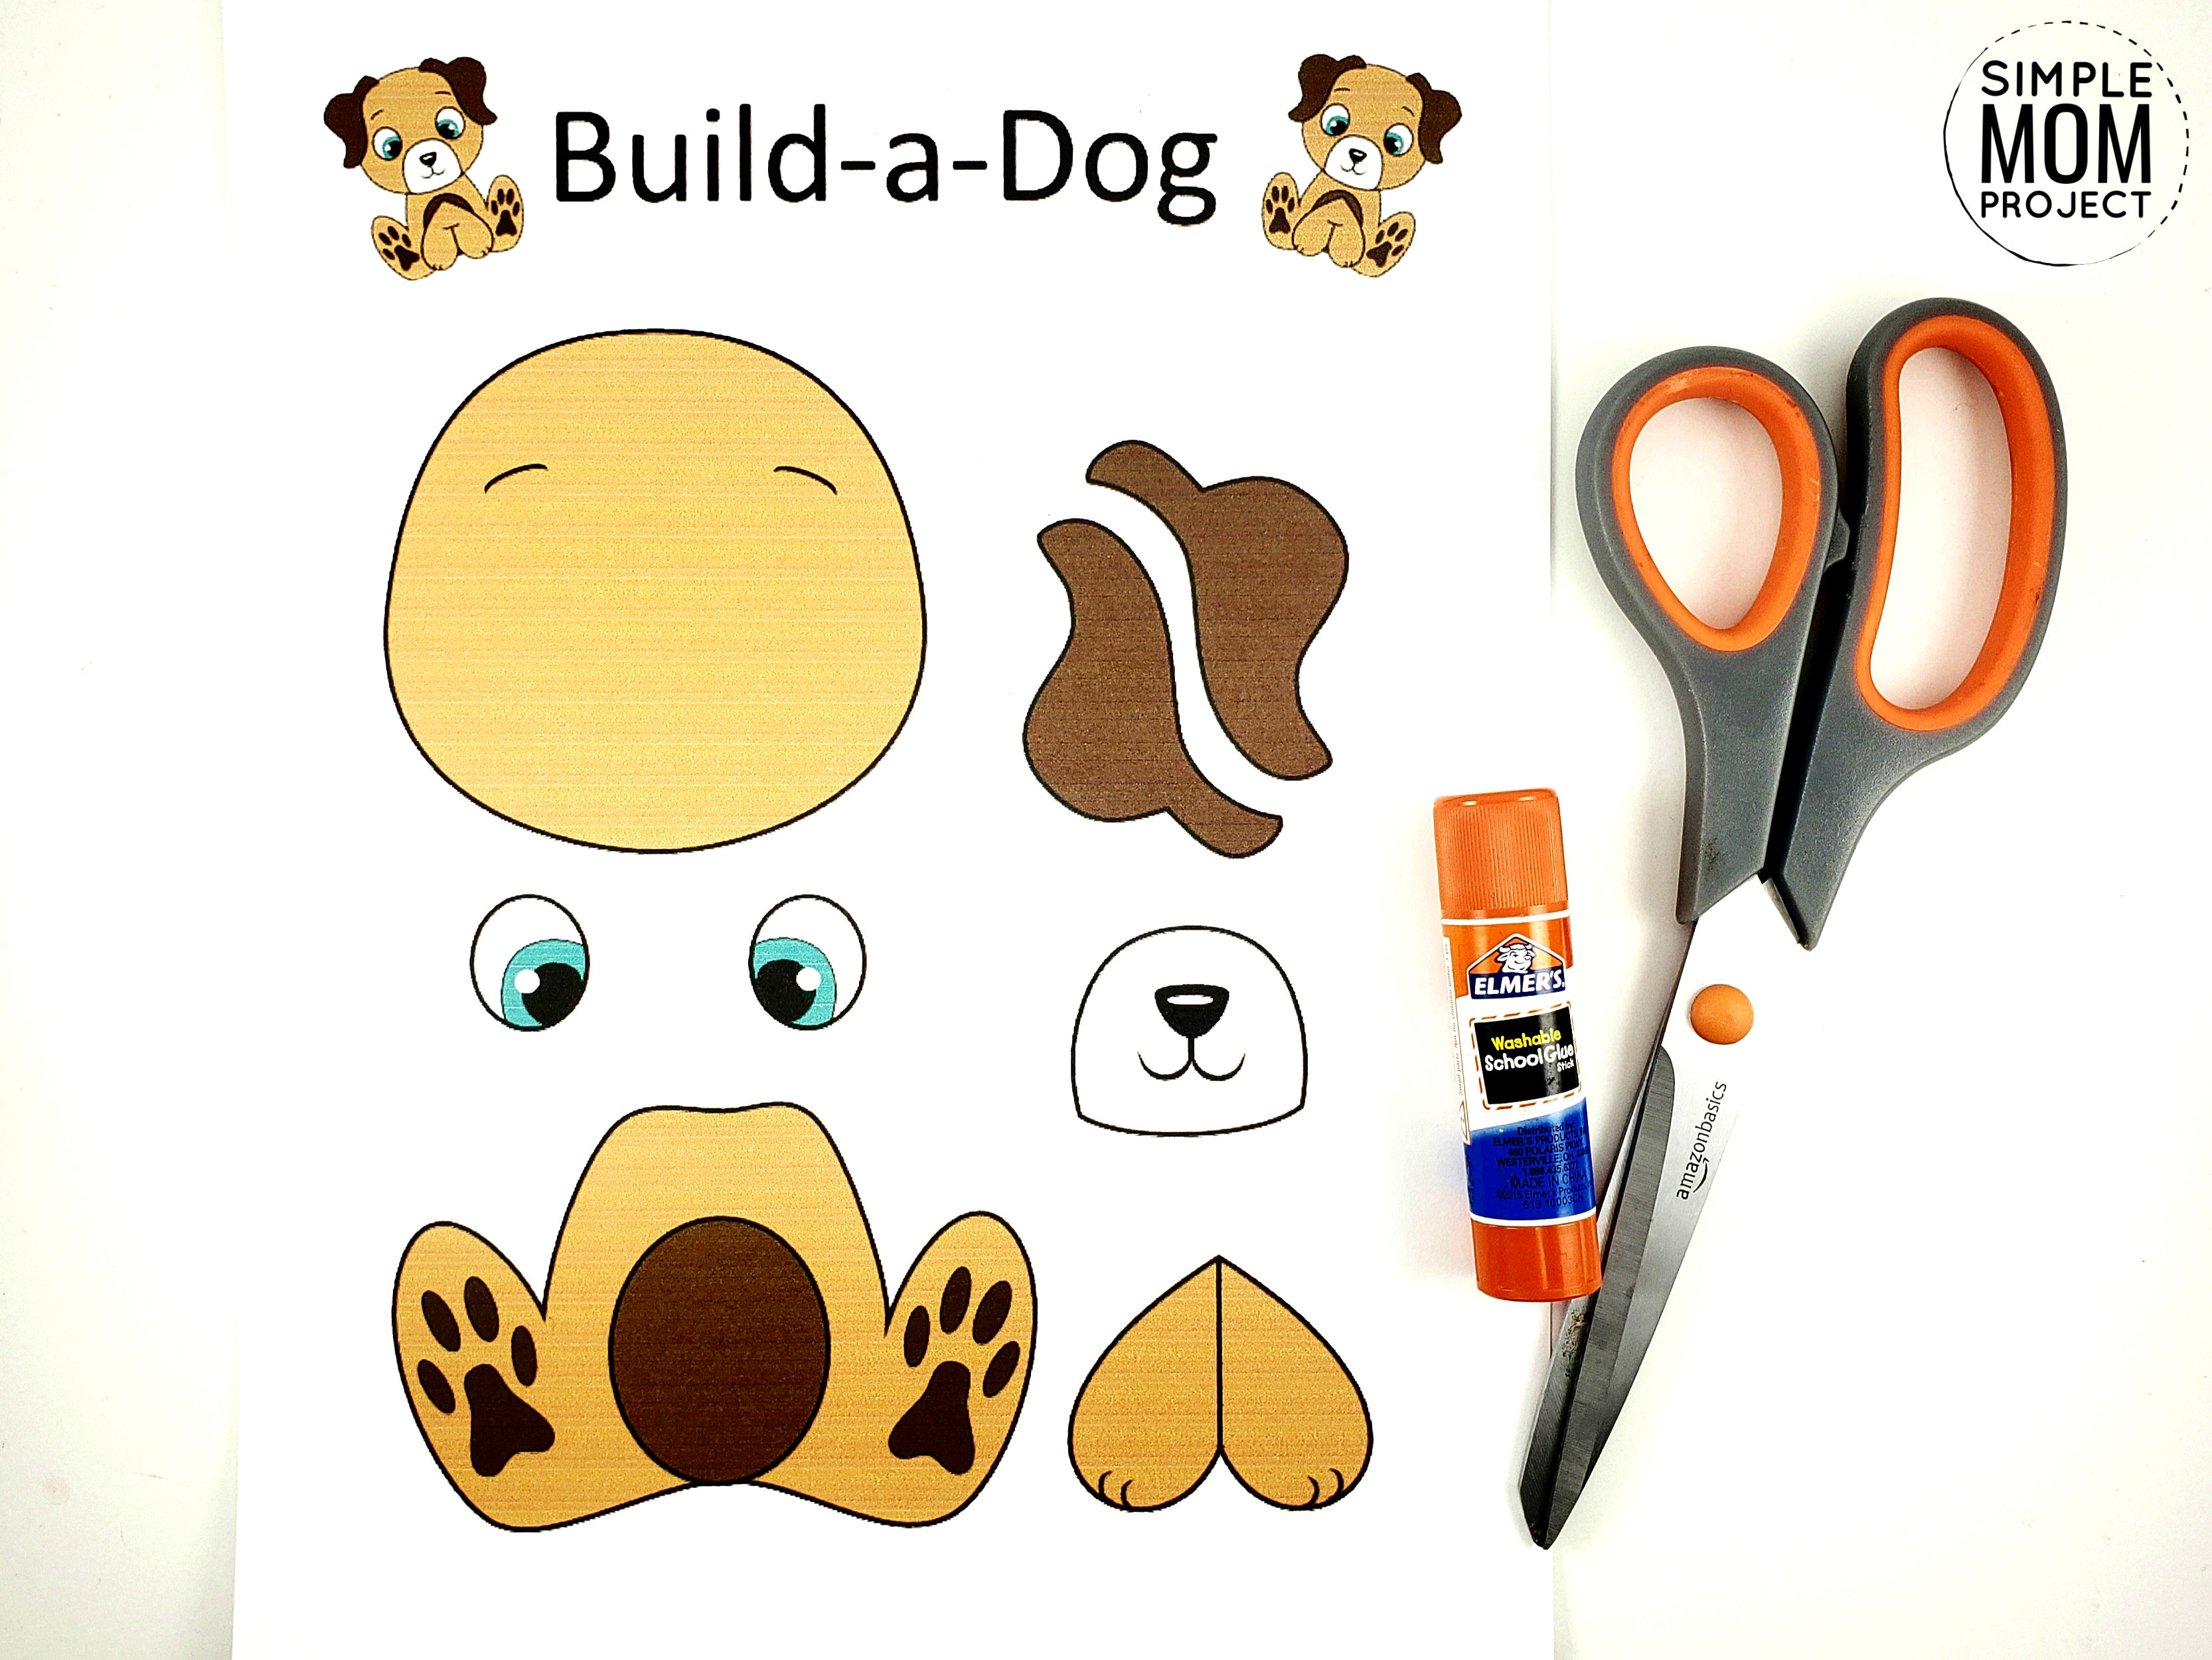 Free Printable Build a Dog Craft for Kids, Preschoolers, Toddlers and kindergartners 1